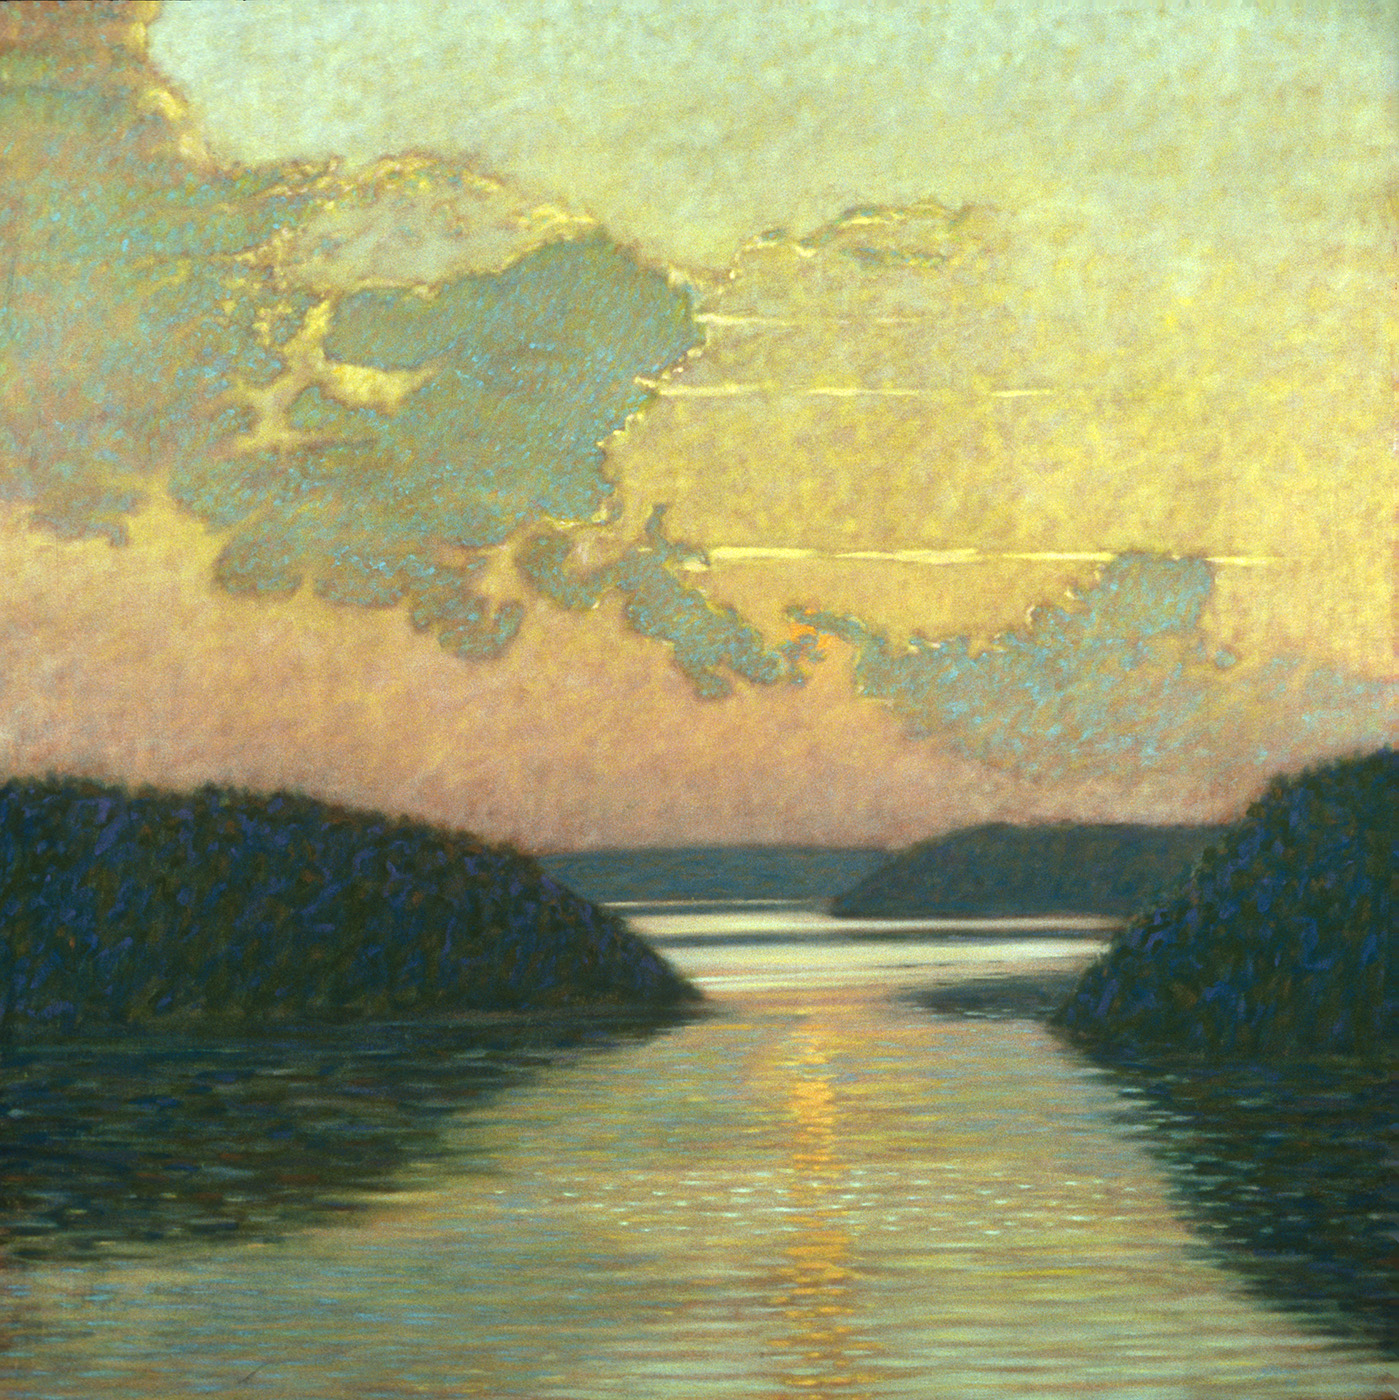 Sunset Over Water   | oil on canvas 48 x 48"